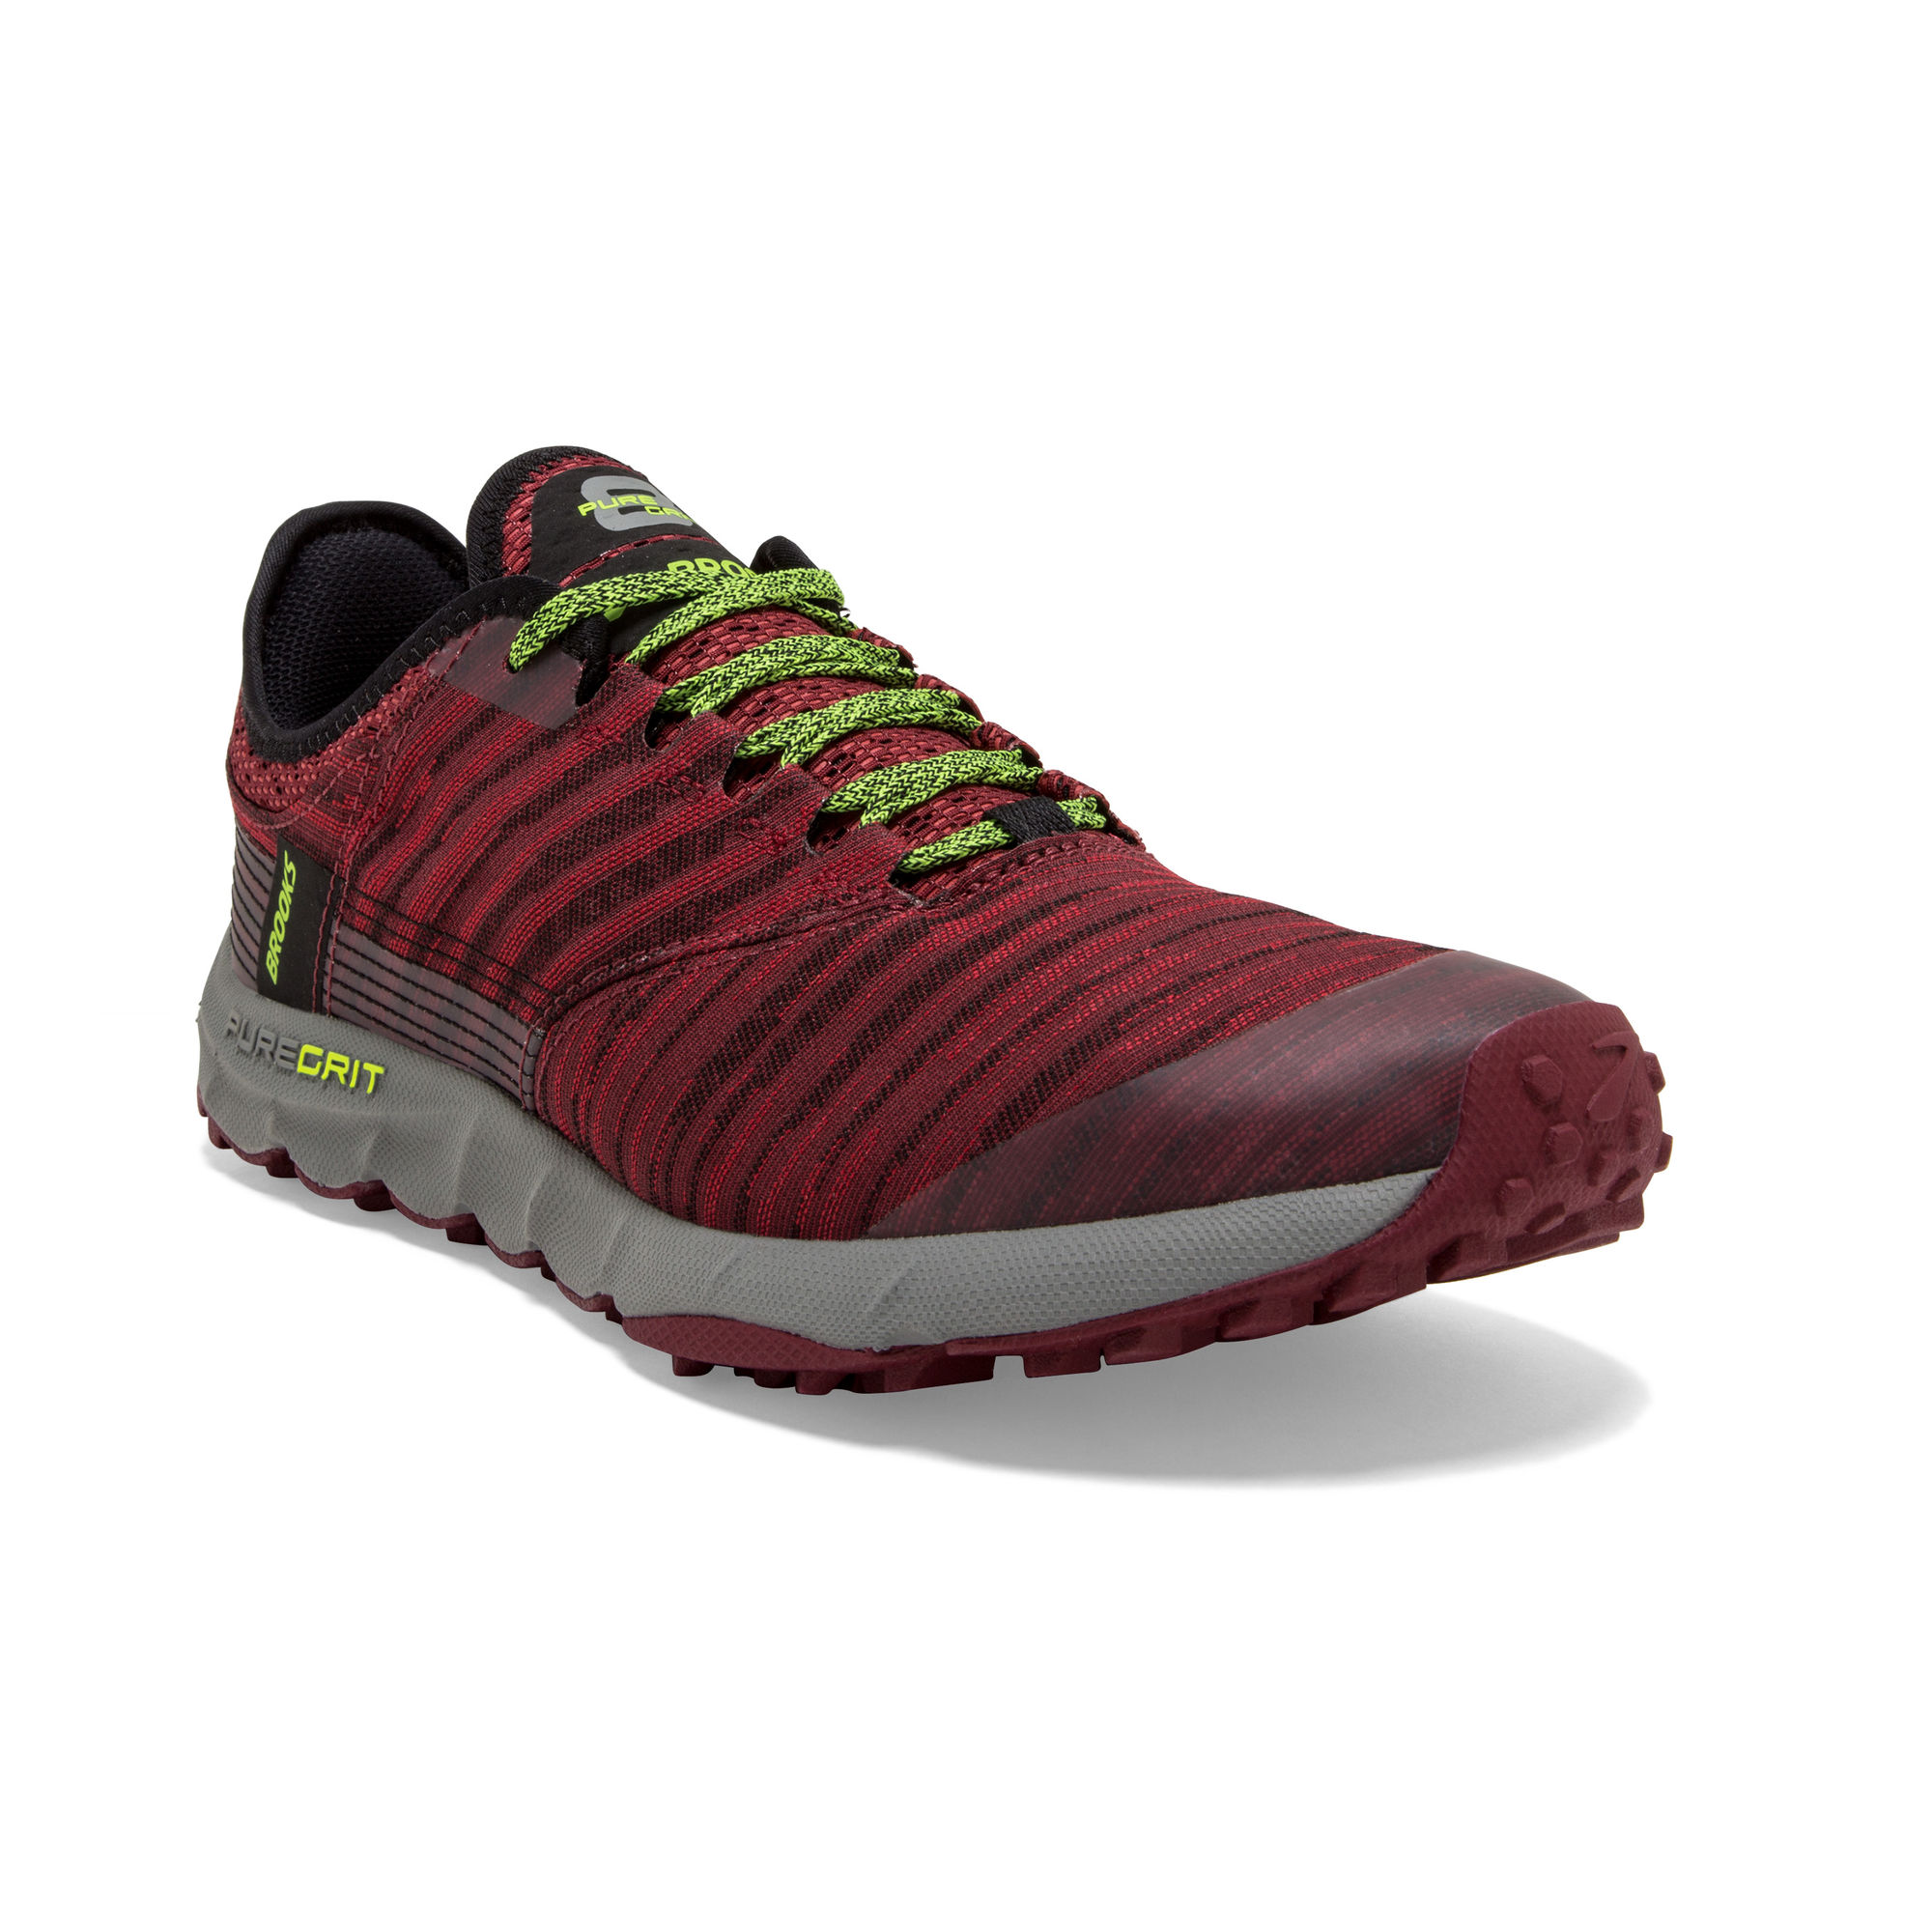 Brooks PureGrit 8 in Rot